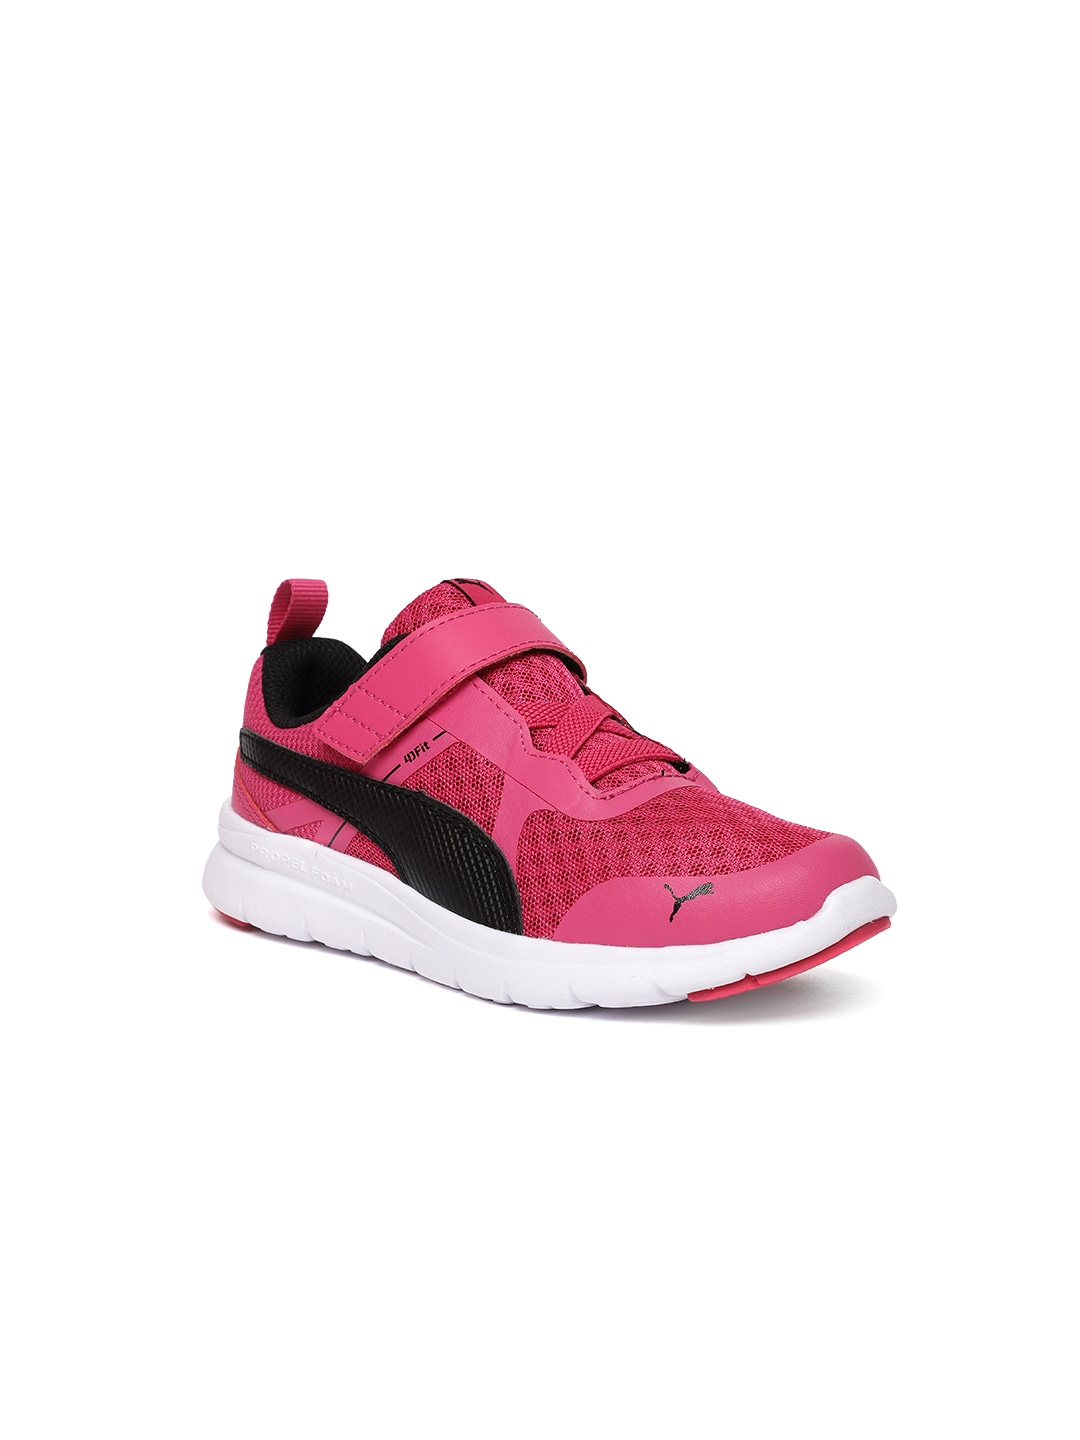 Puma Mesh Casual Shoes - Buy Puma Mesh Casual Shoes online in India ecc76f50e